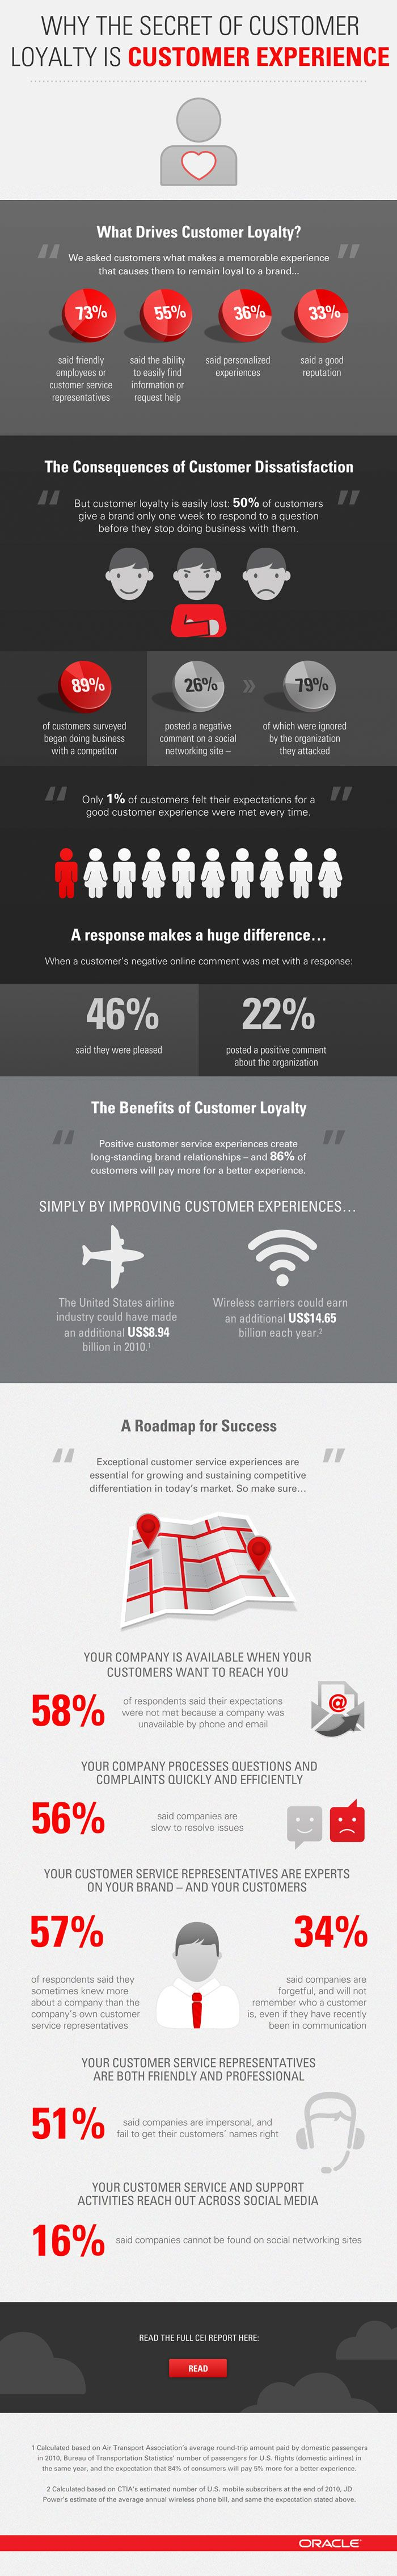 What drives customer loyalty?